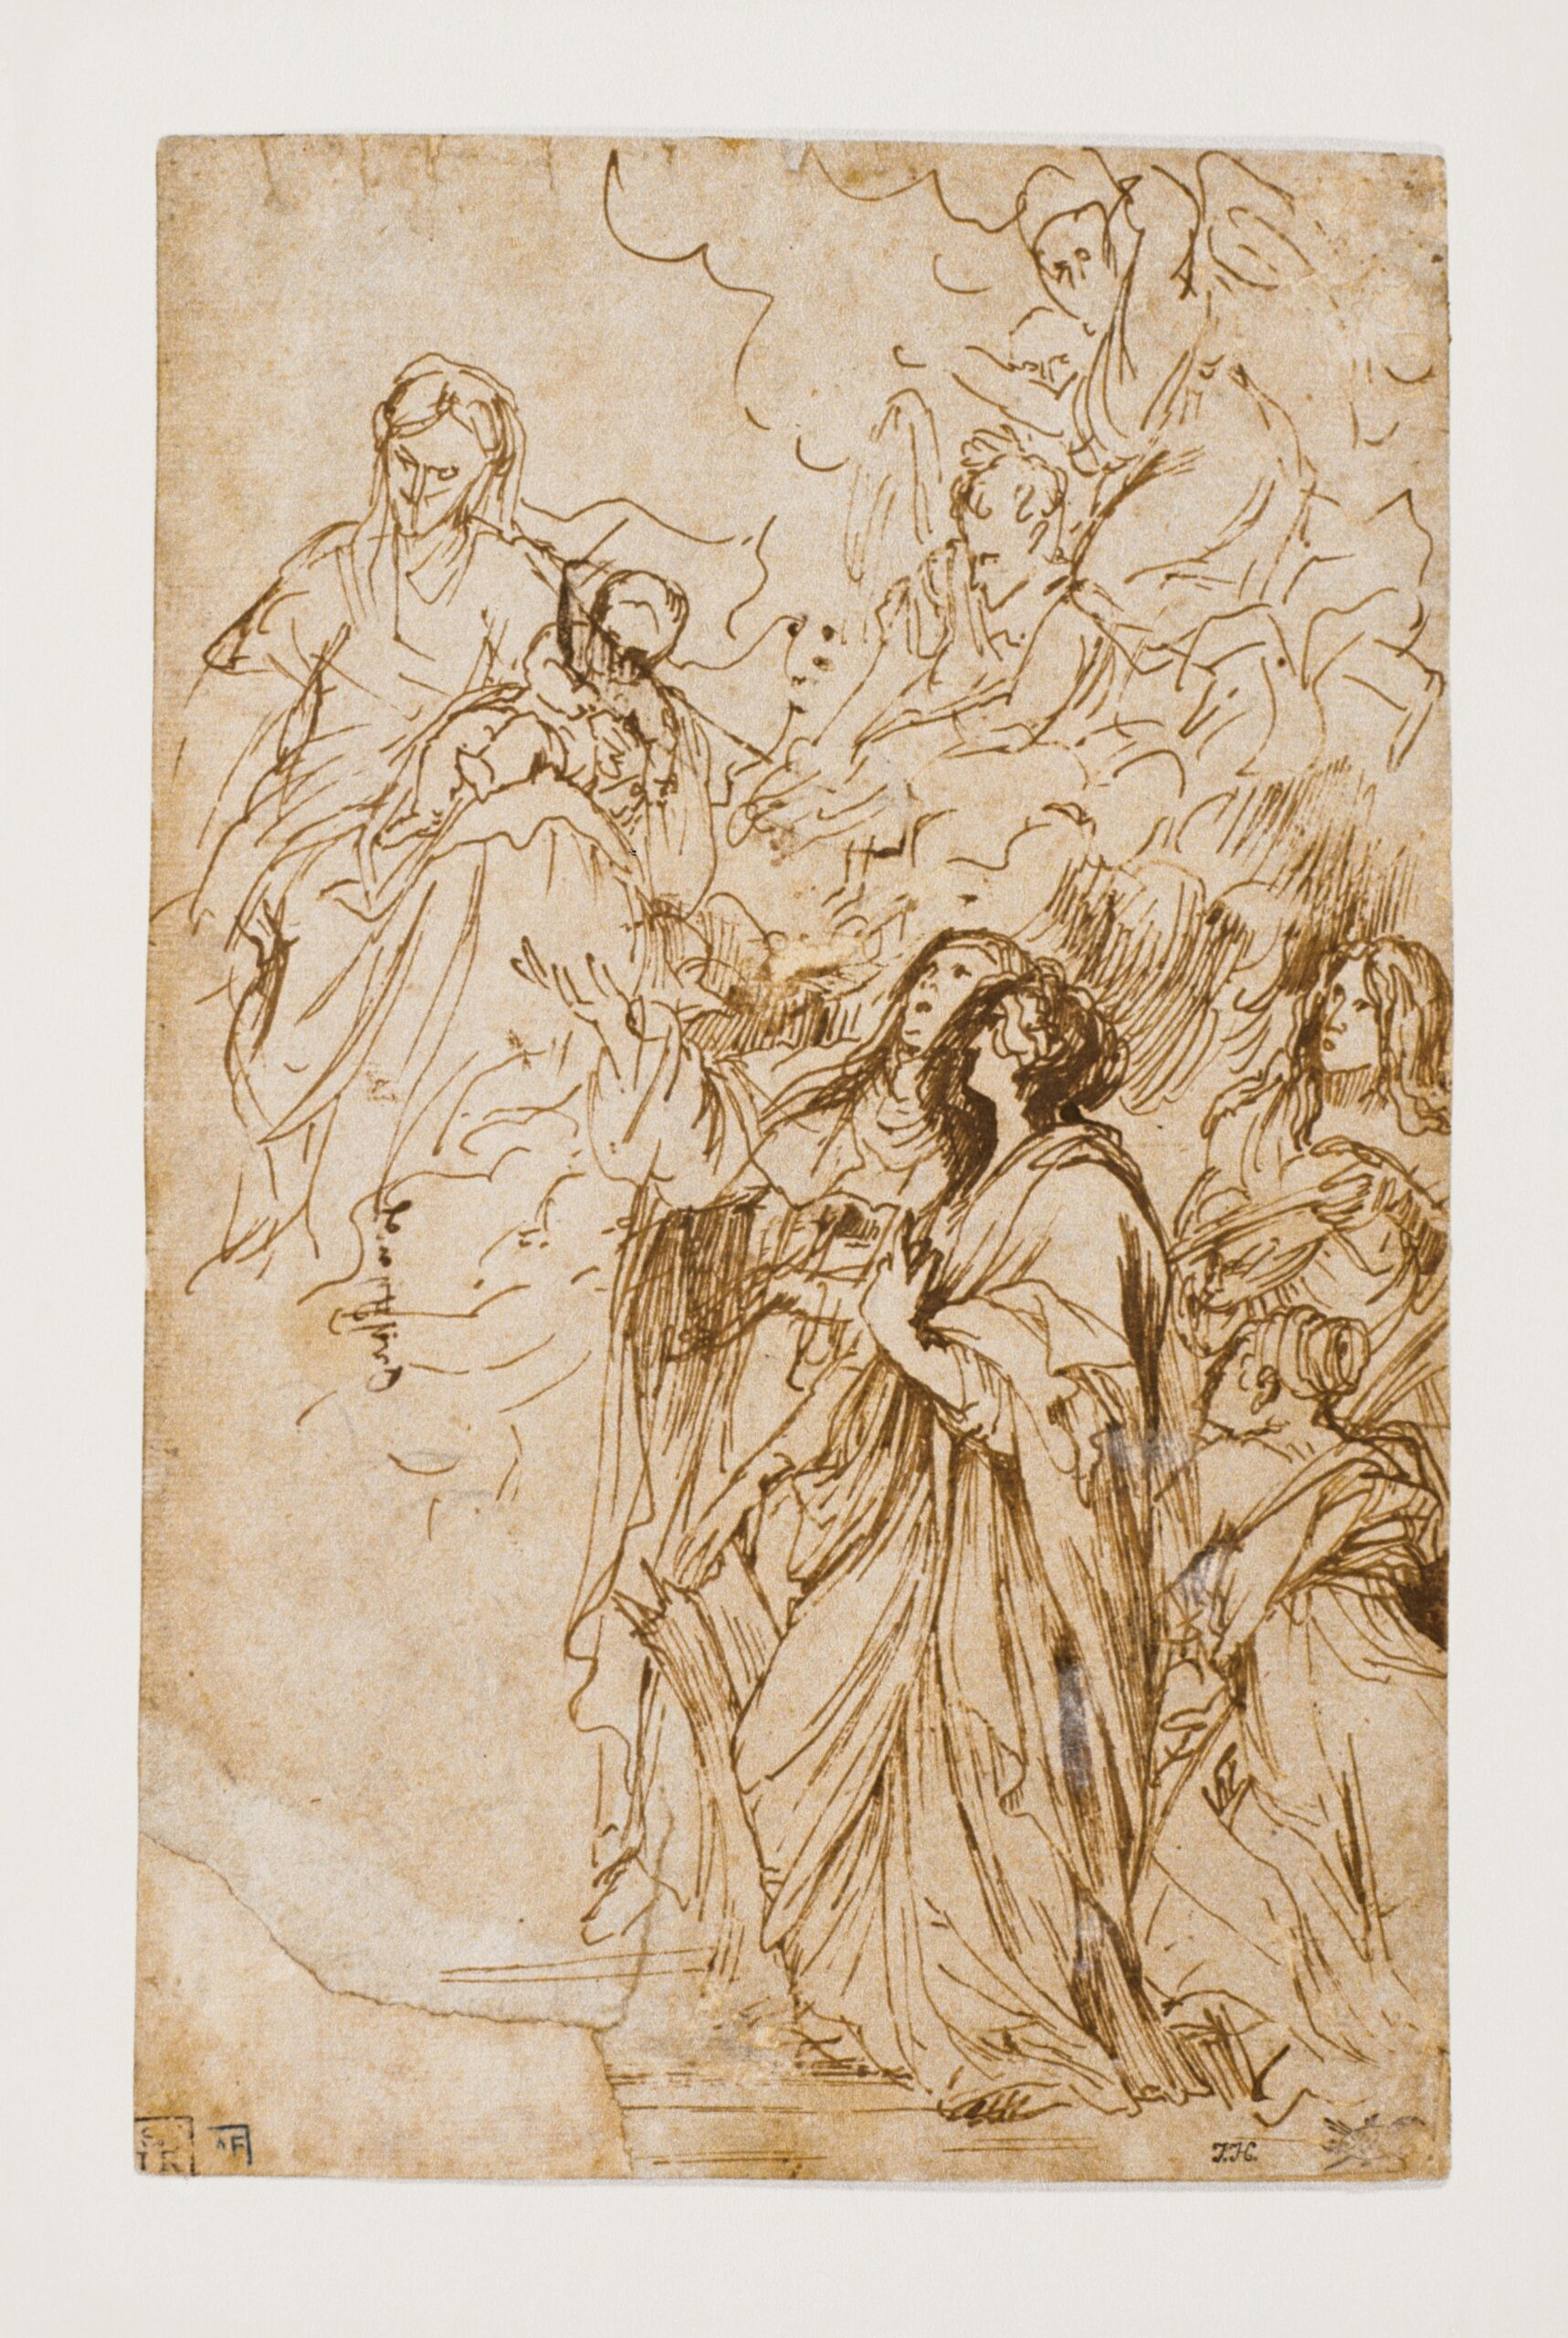 Anthony van Dyck (1599-1641), Madonna and Child with Female Saints, pen and brown ink, traces of black chalk, with traces of white body-colour, 26.7 x 17.1 cm Liberna Collection, inv. no. 74